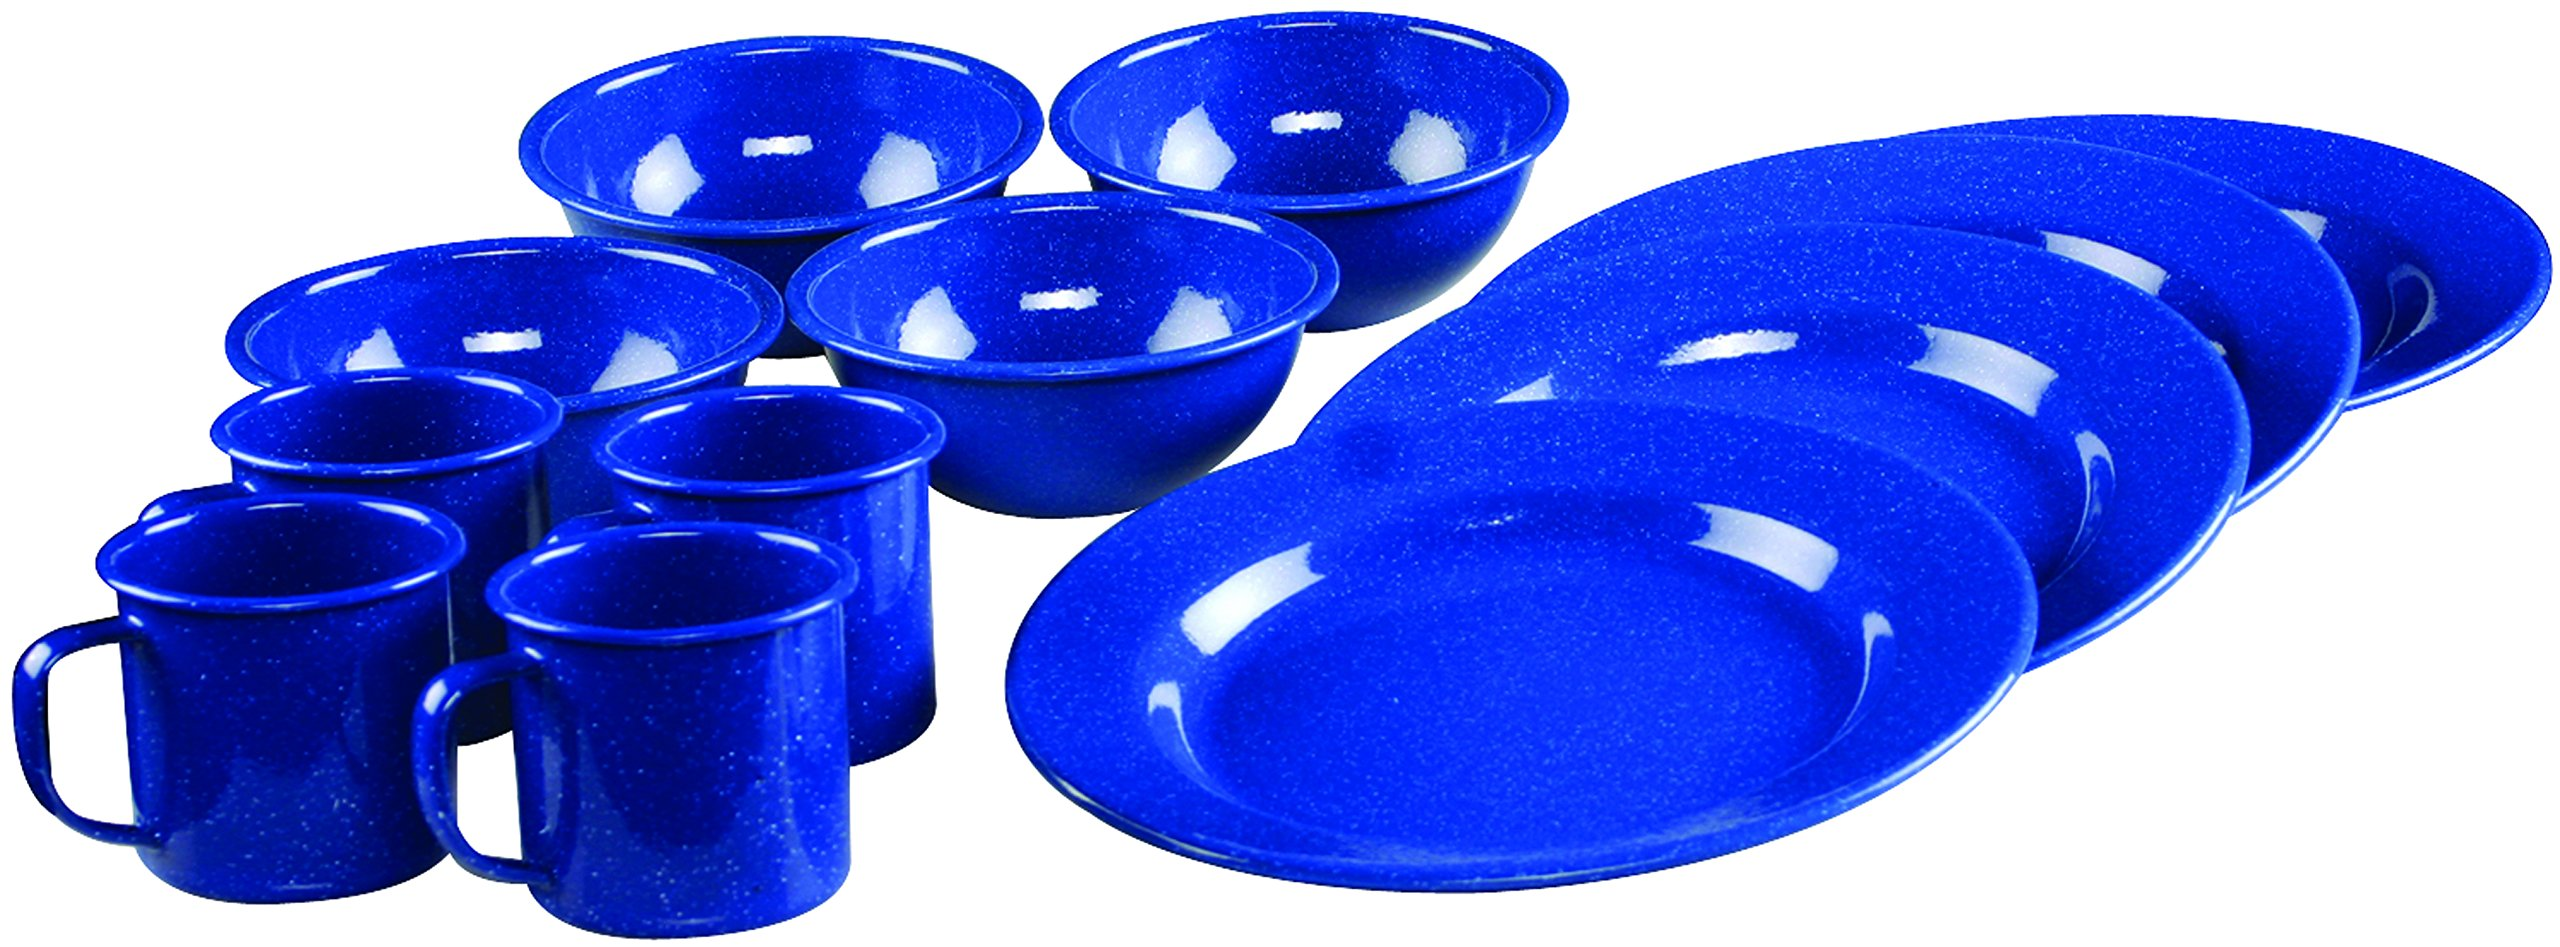 Coleman 12-Piece Enamel Dinnerware Set, Blue